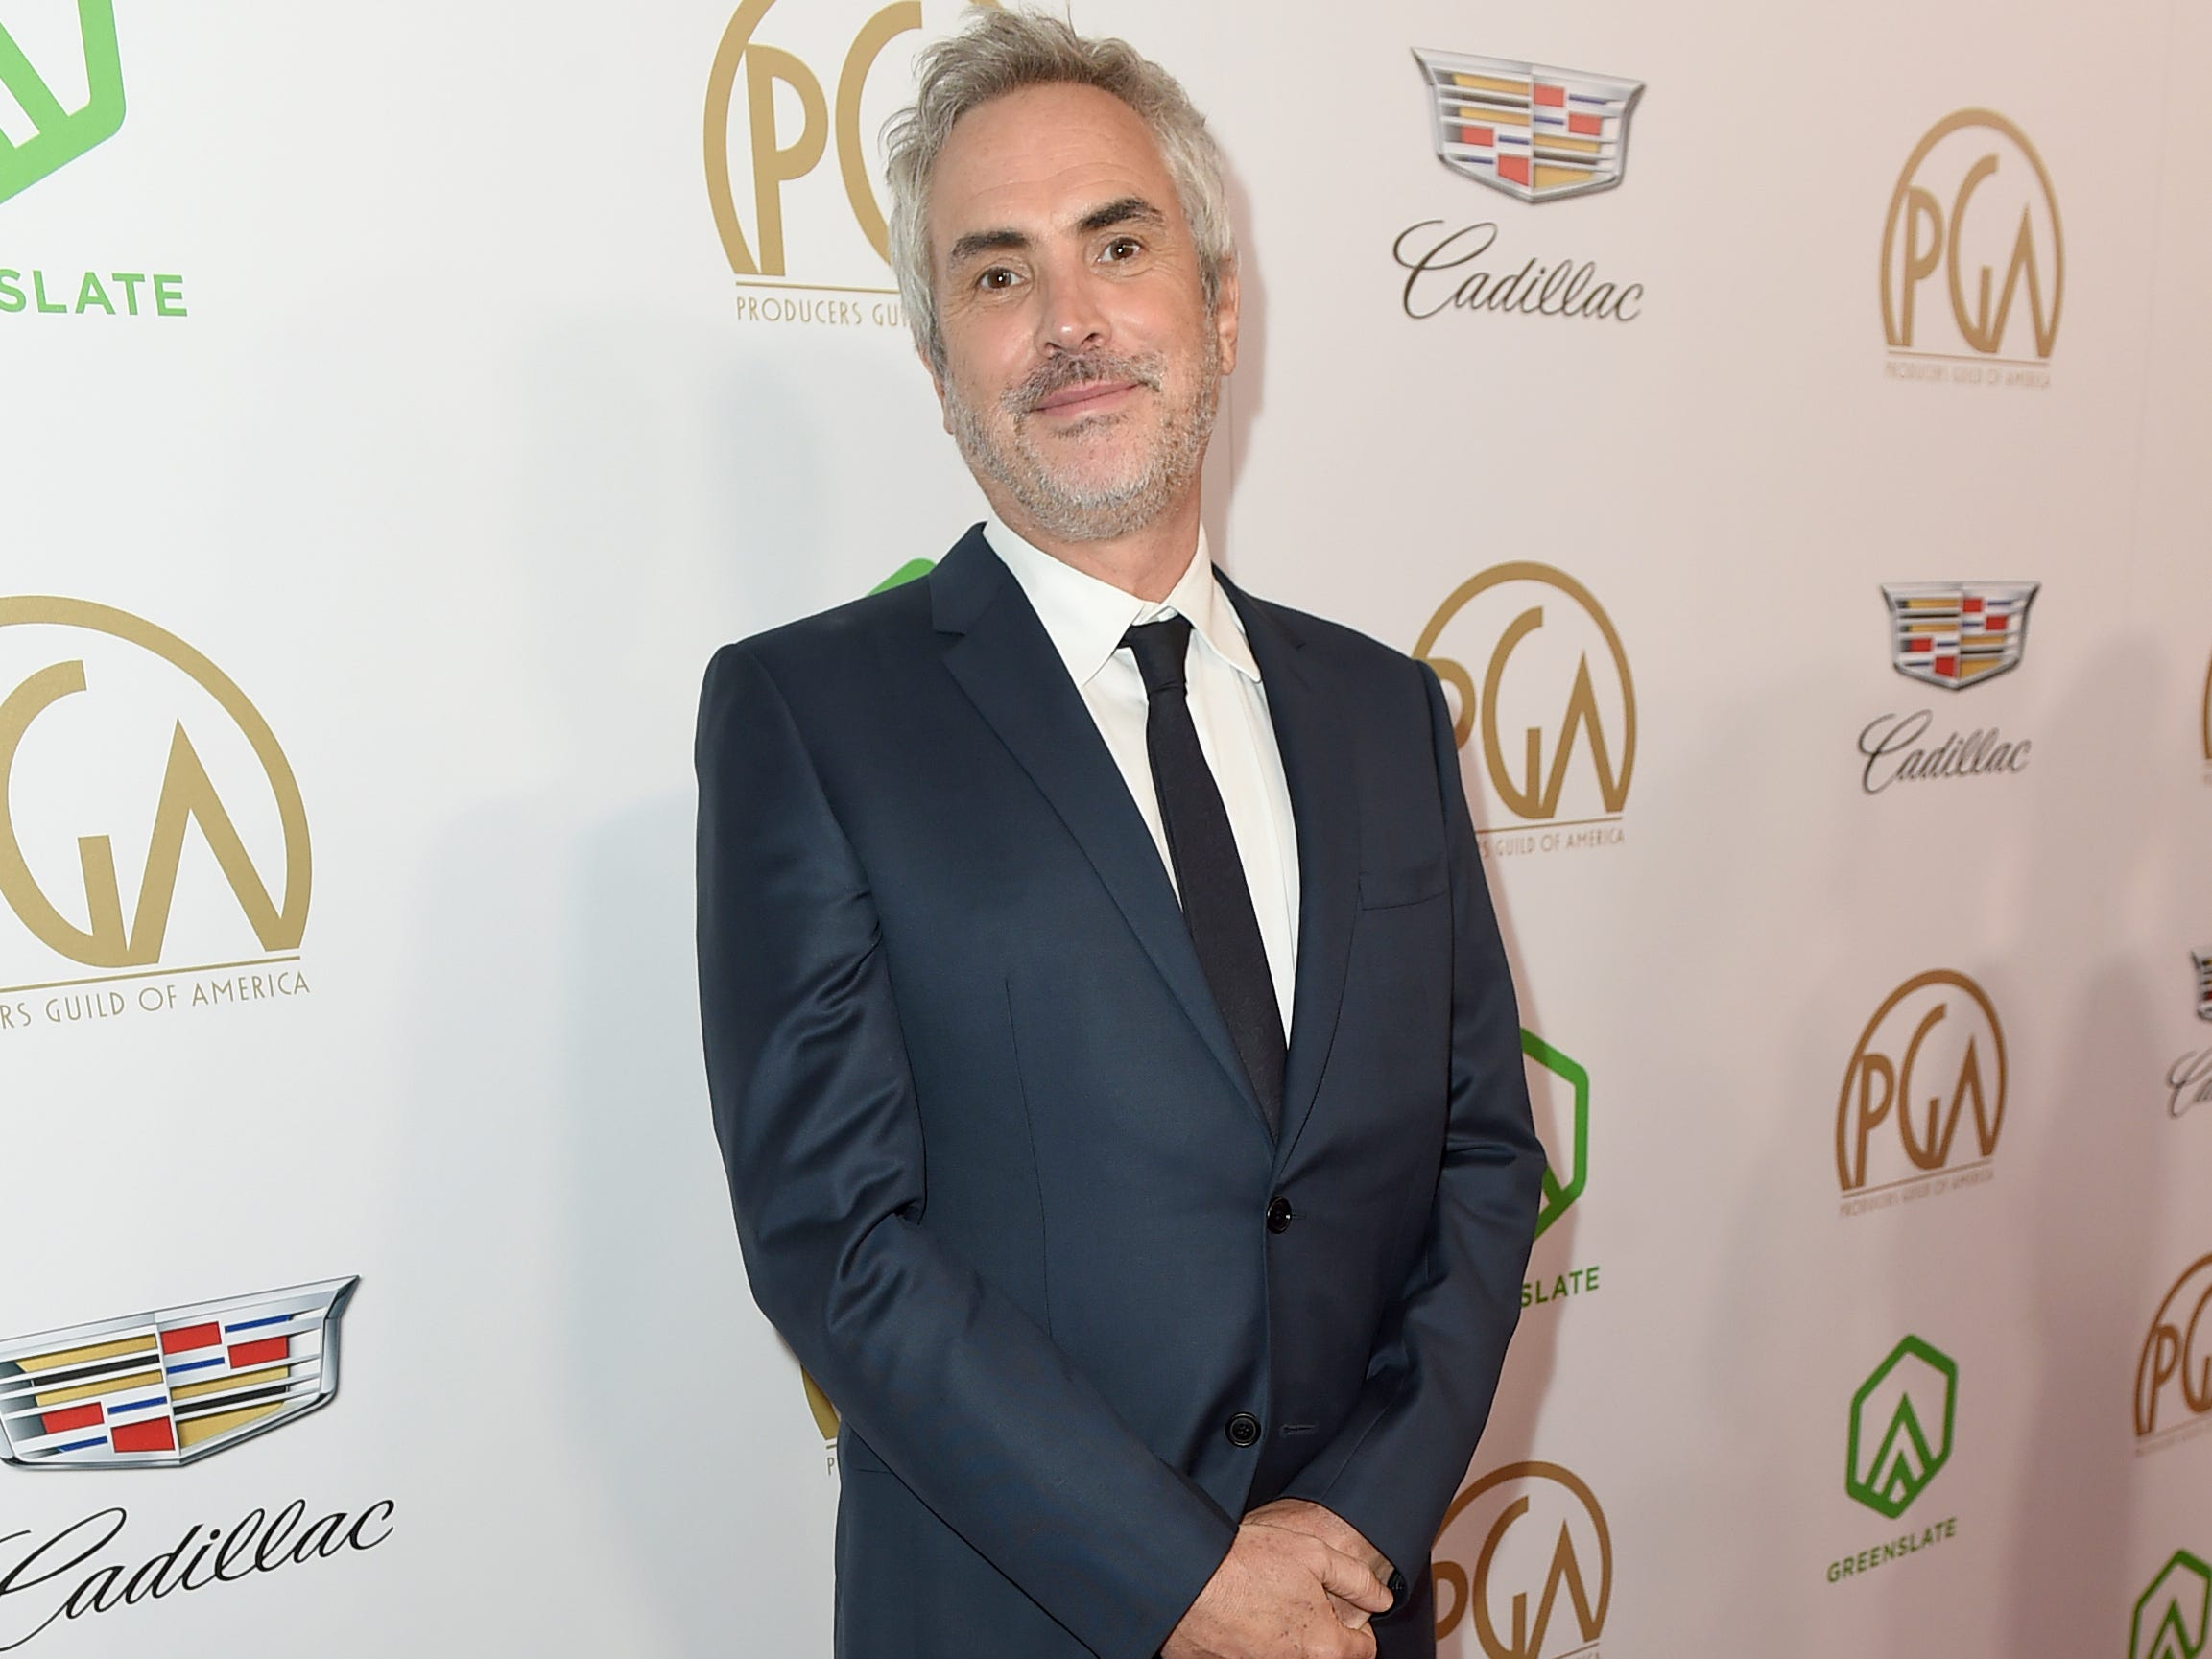 IMAGE DISTRIBUTED FOR PRODUCERS GUILD OF AMERICA - Alfonso Cuaron arrives at the 30th Producers Guild Awards presented by Cadillac at the Beverly Hilton on Saturday, Jan. 19, 2019, in Beverly Hills, Calif. (Photo by Jordan Strauss/Invision for Producers Guild of America/AP Images) ORG XMIT: CALB123